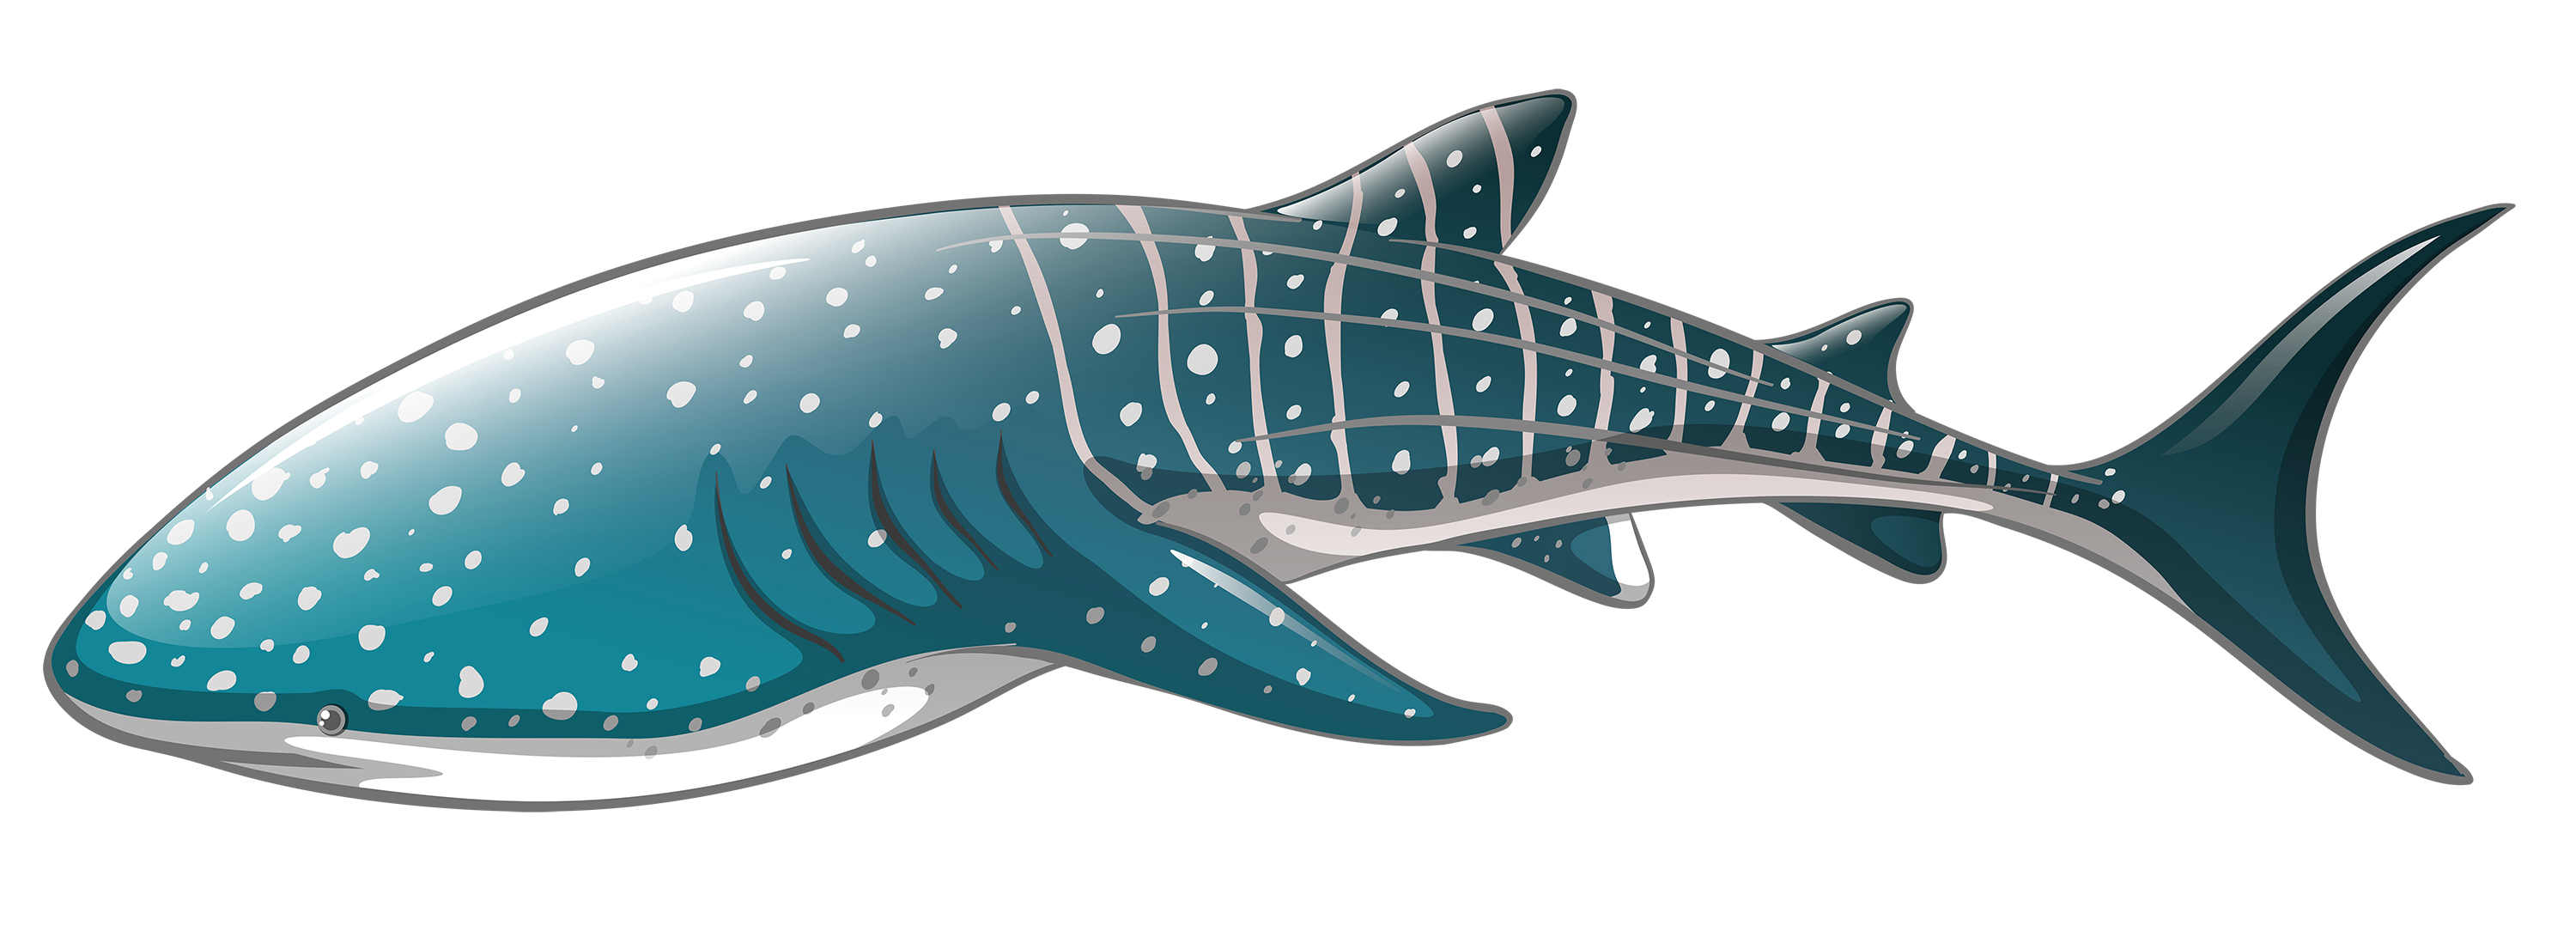 Shark clipart orange. Whale png best web